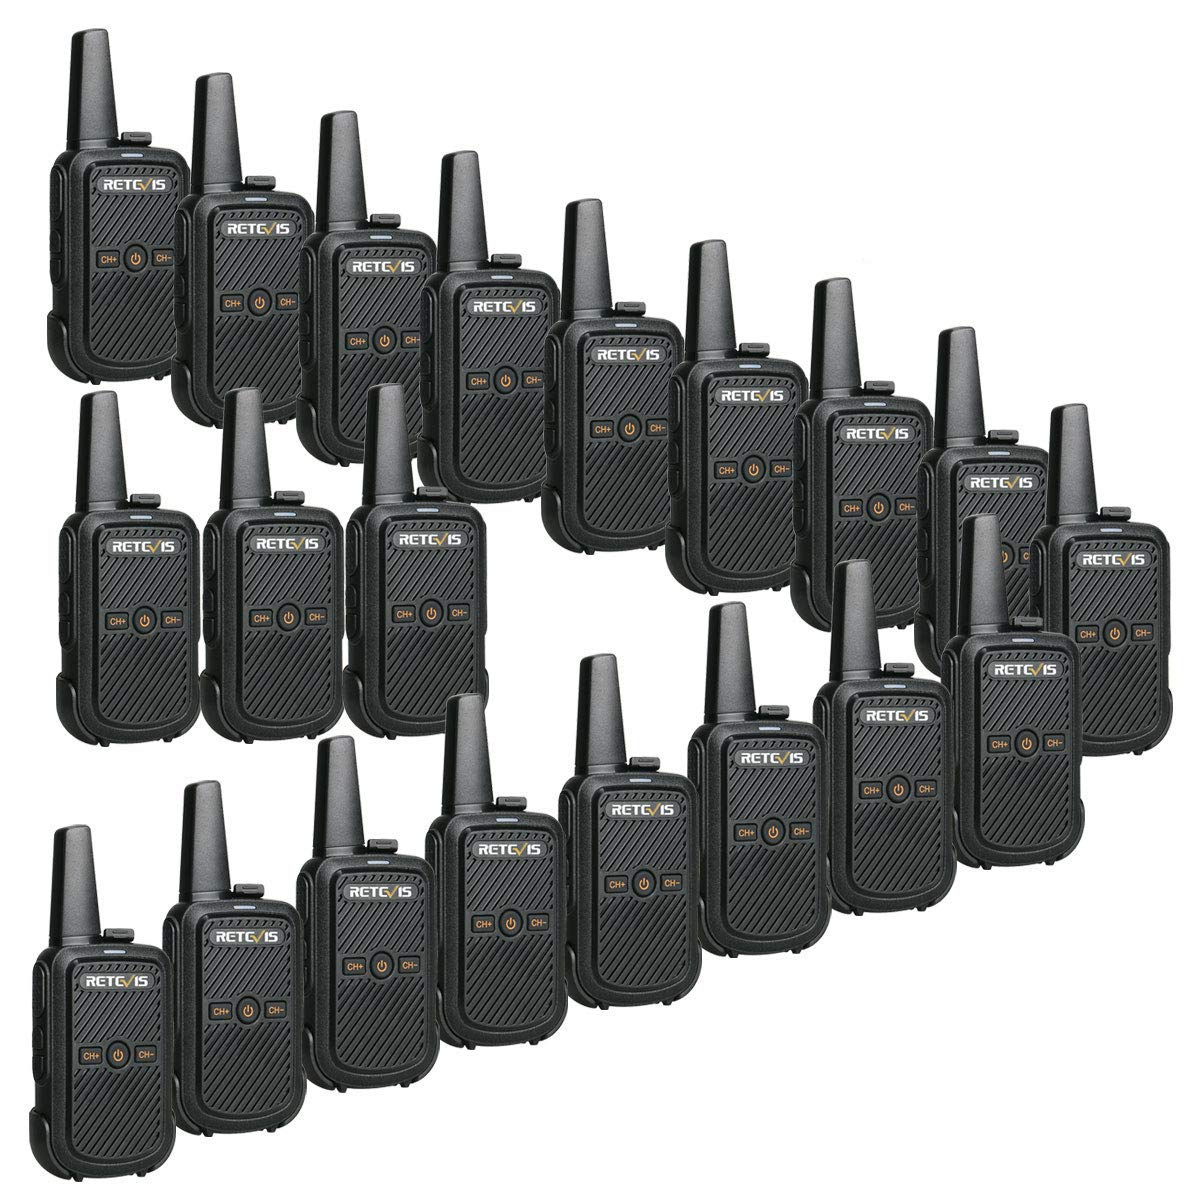 Retevis RT15 Walkie Talkies Small Rechargeable UHF 16 Channel Lock VOX Voice Encryption Security Mini 2 Way Radios Walkie Talkies for Adults 20 Pack